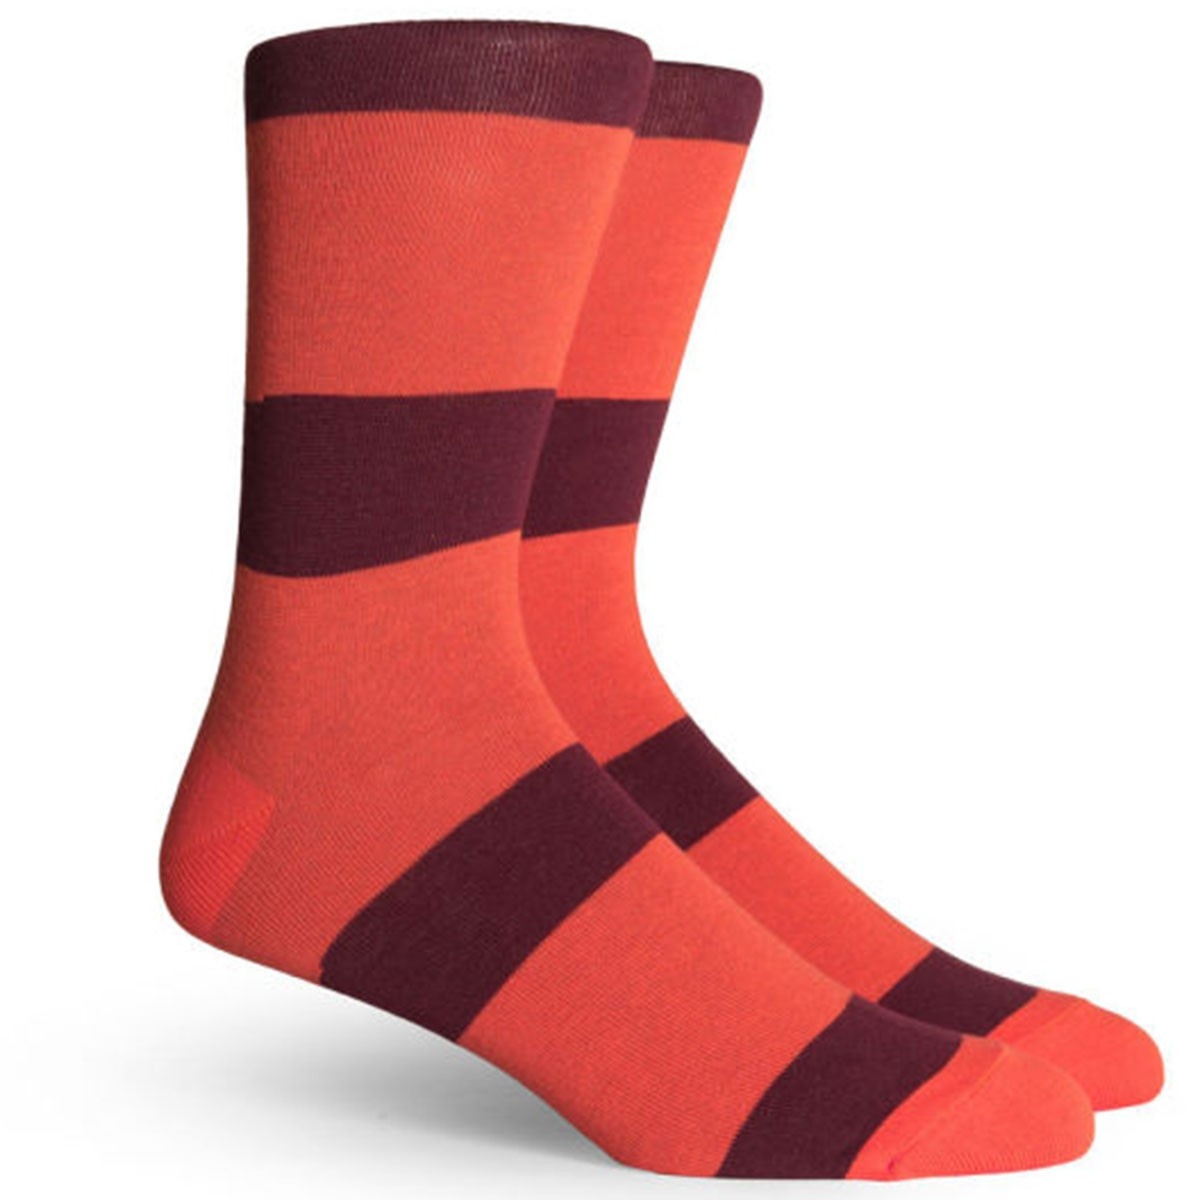 Richer Poorer London Socks - Orange